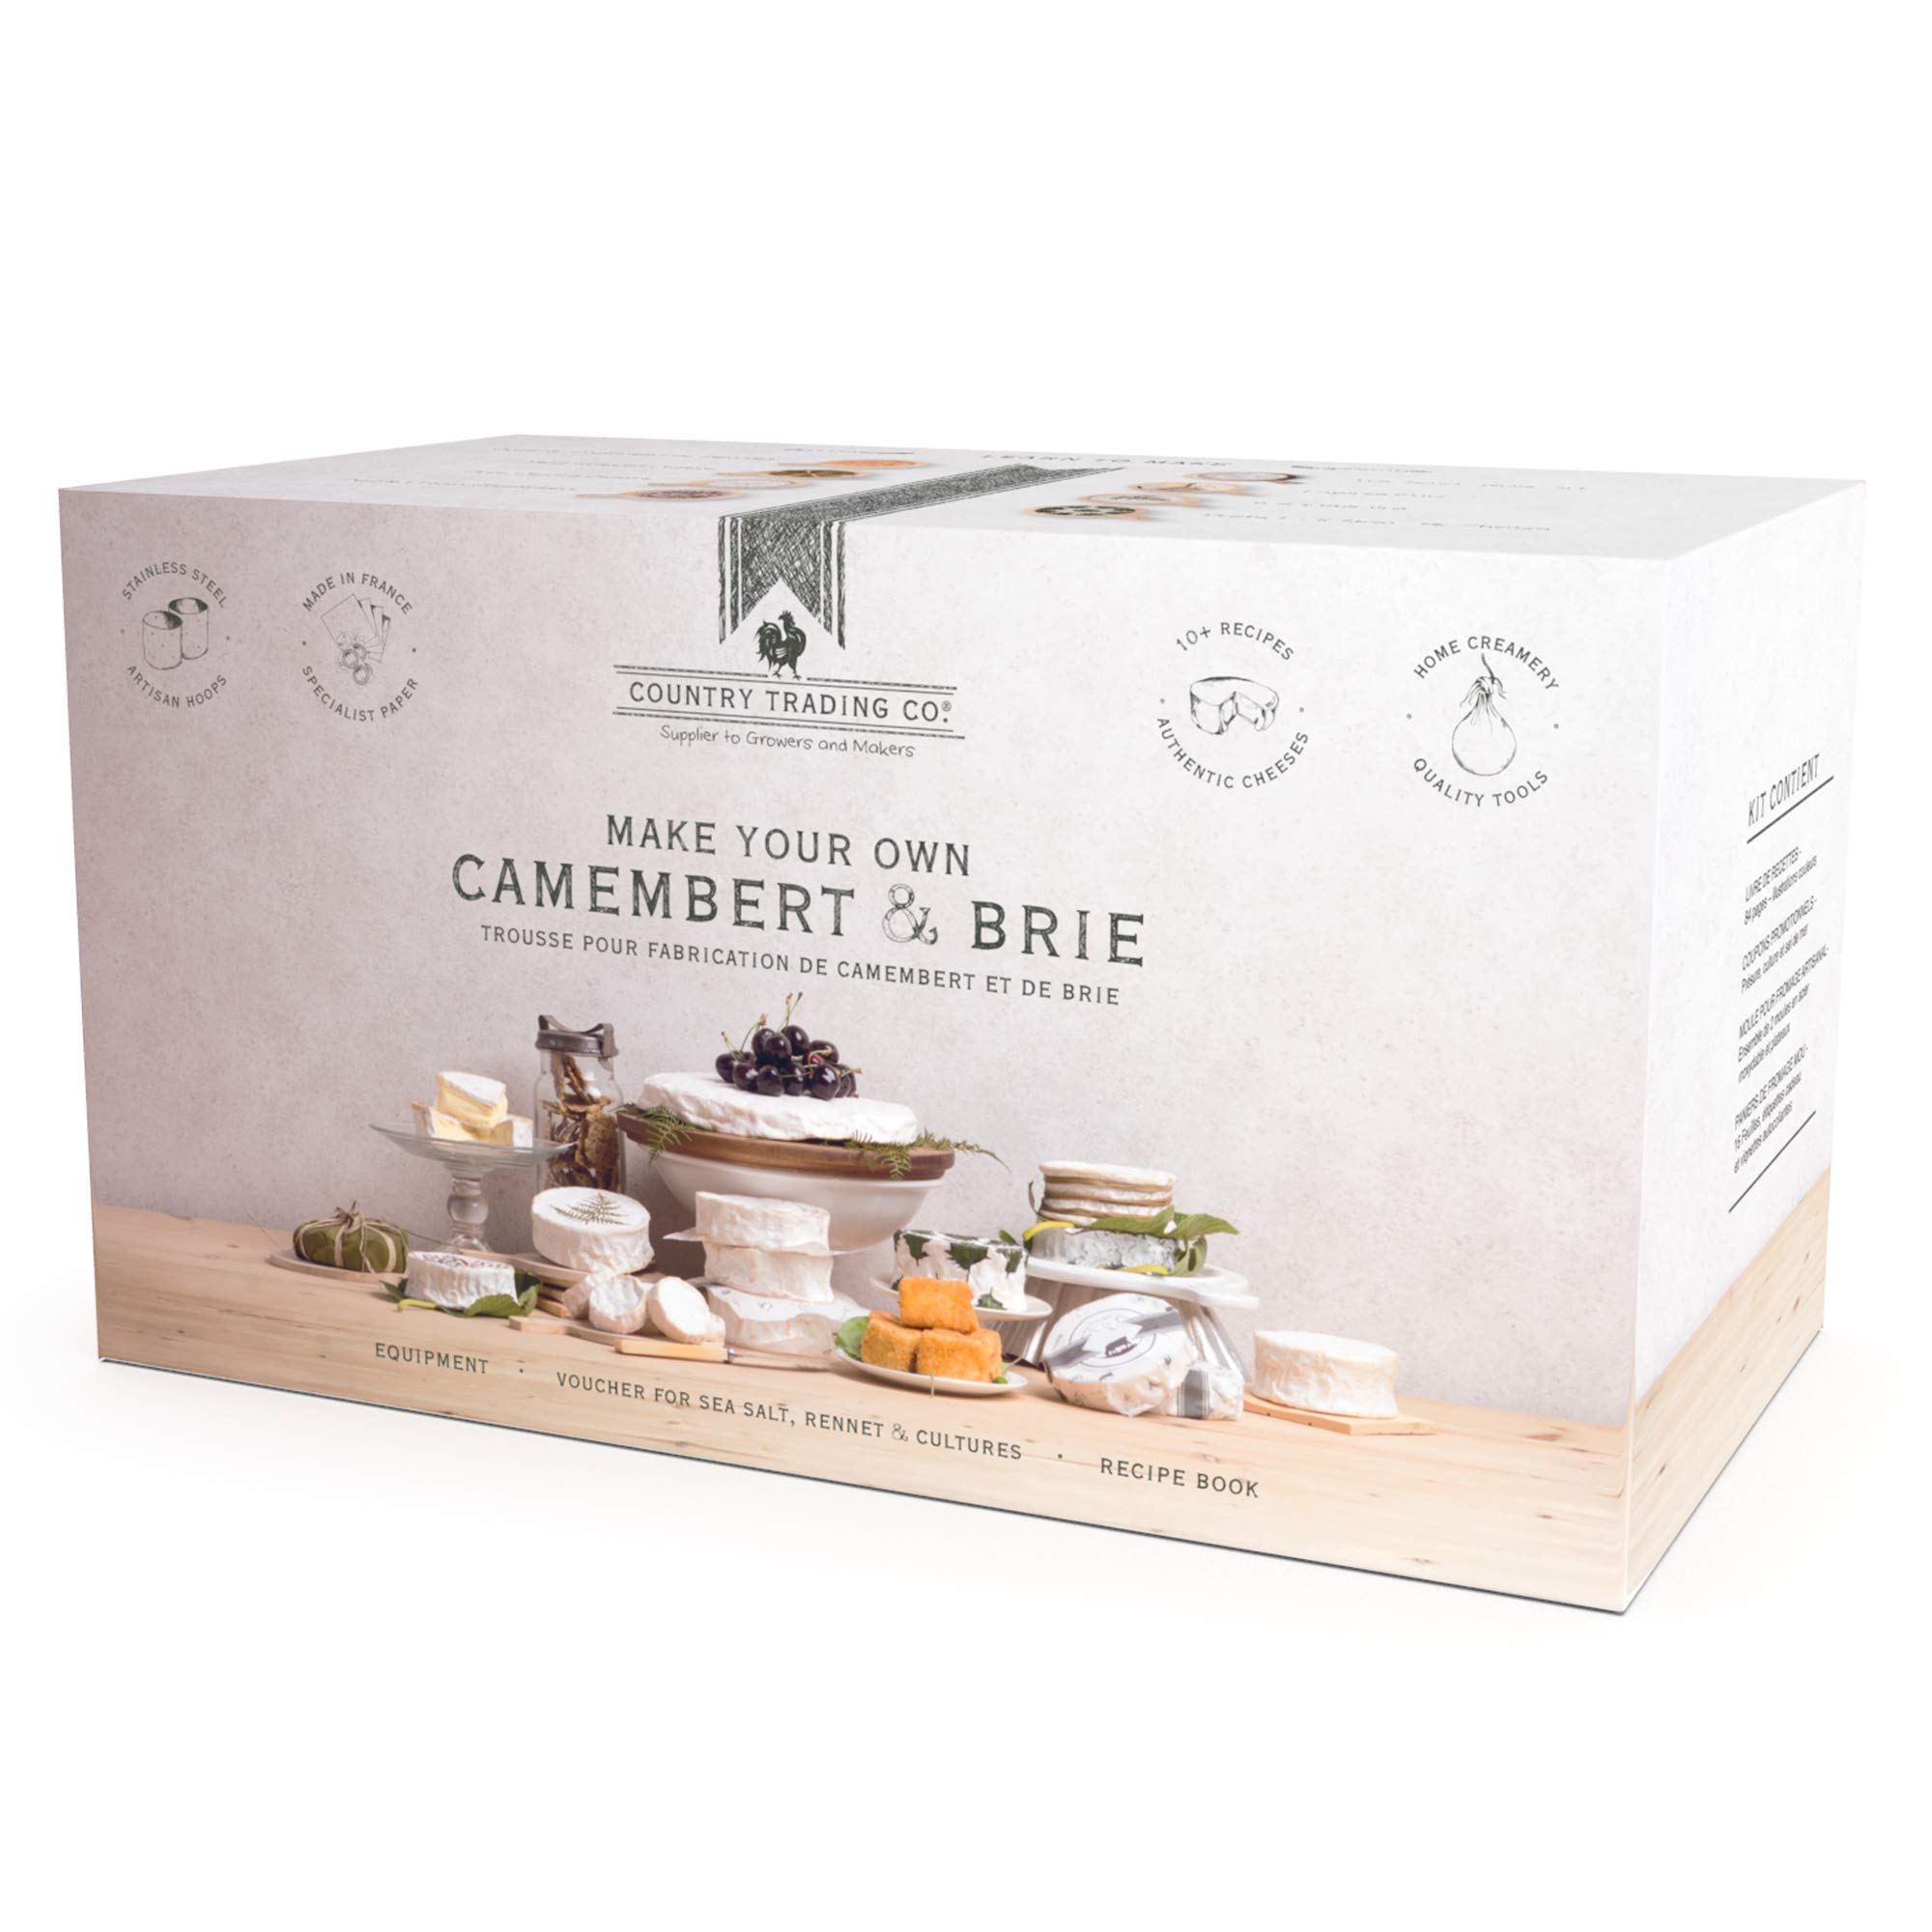 Deluxe Cheese Making Kit: Make Homemade Brie and Camembert with the Ultimate DIY Cheesemaking Starter Pack by Country Trading Co.